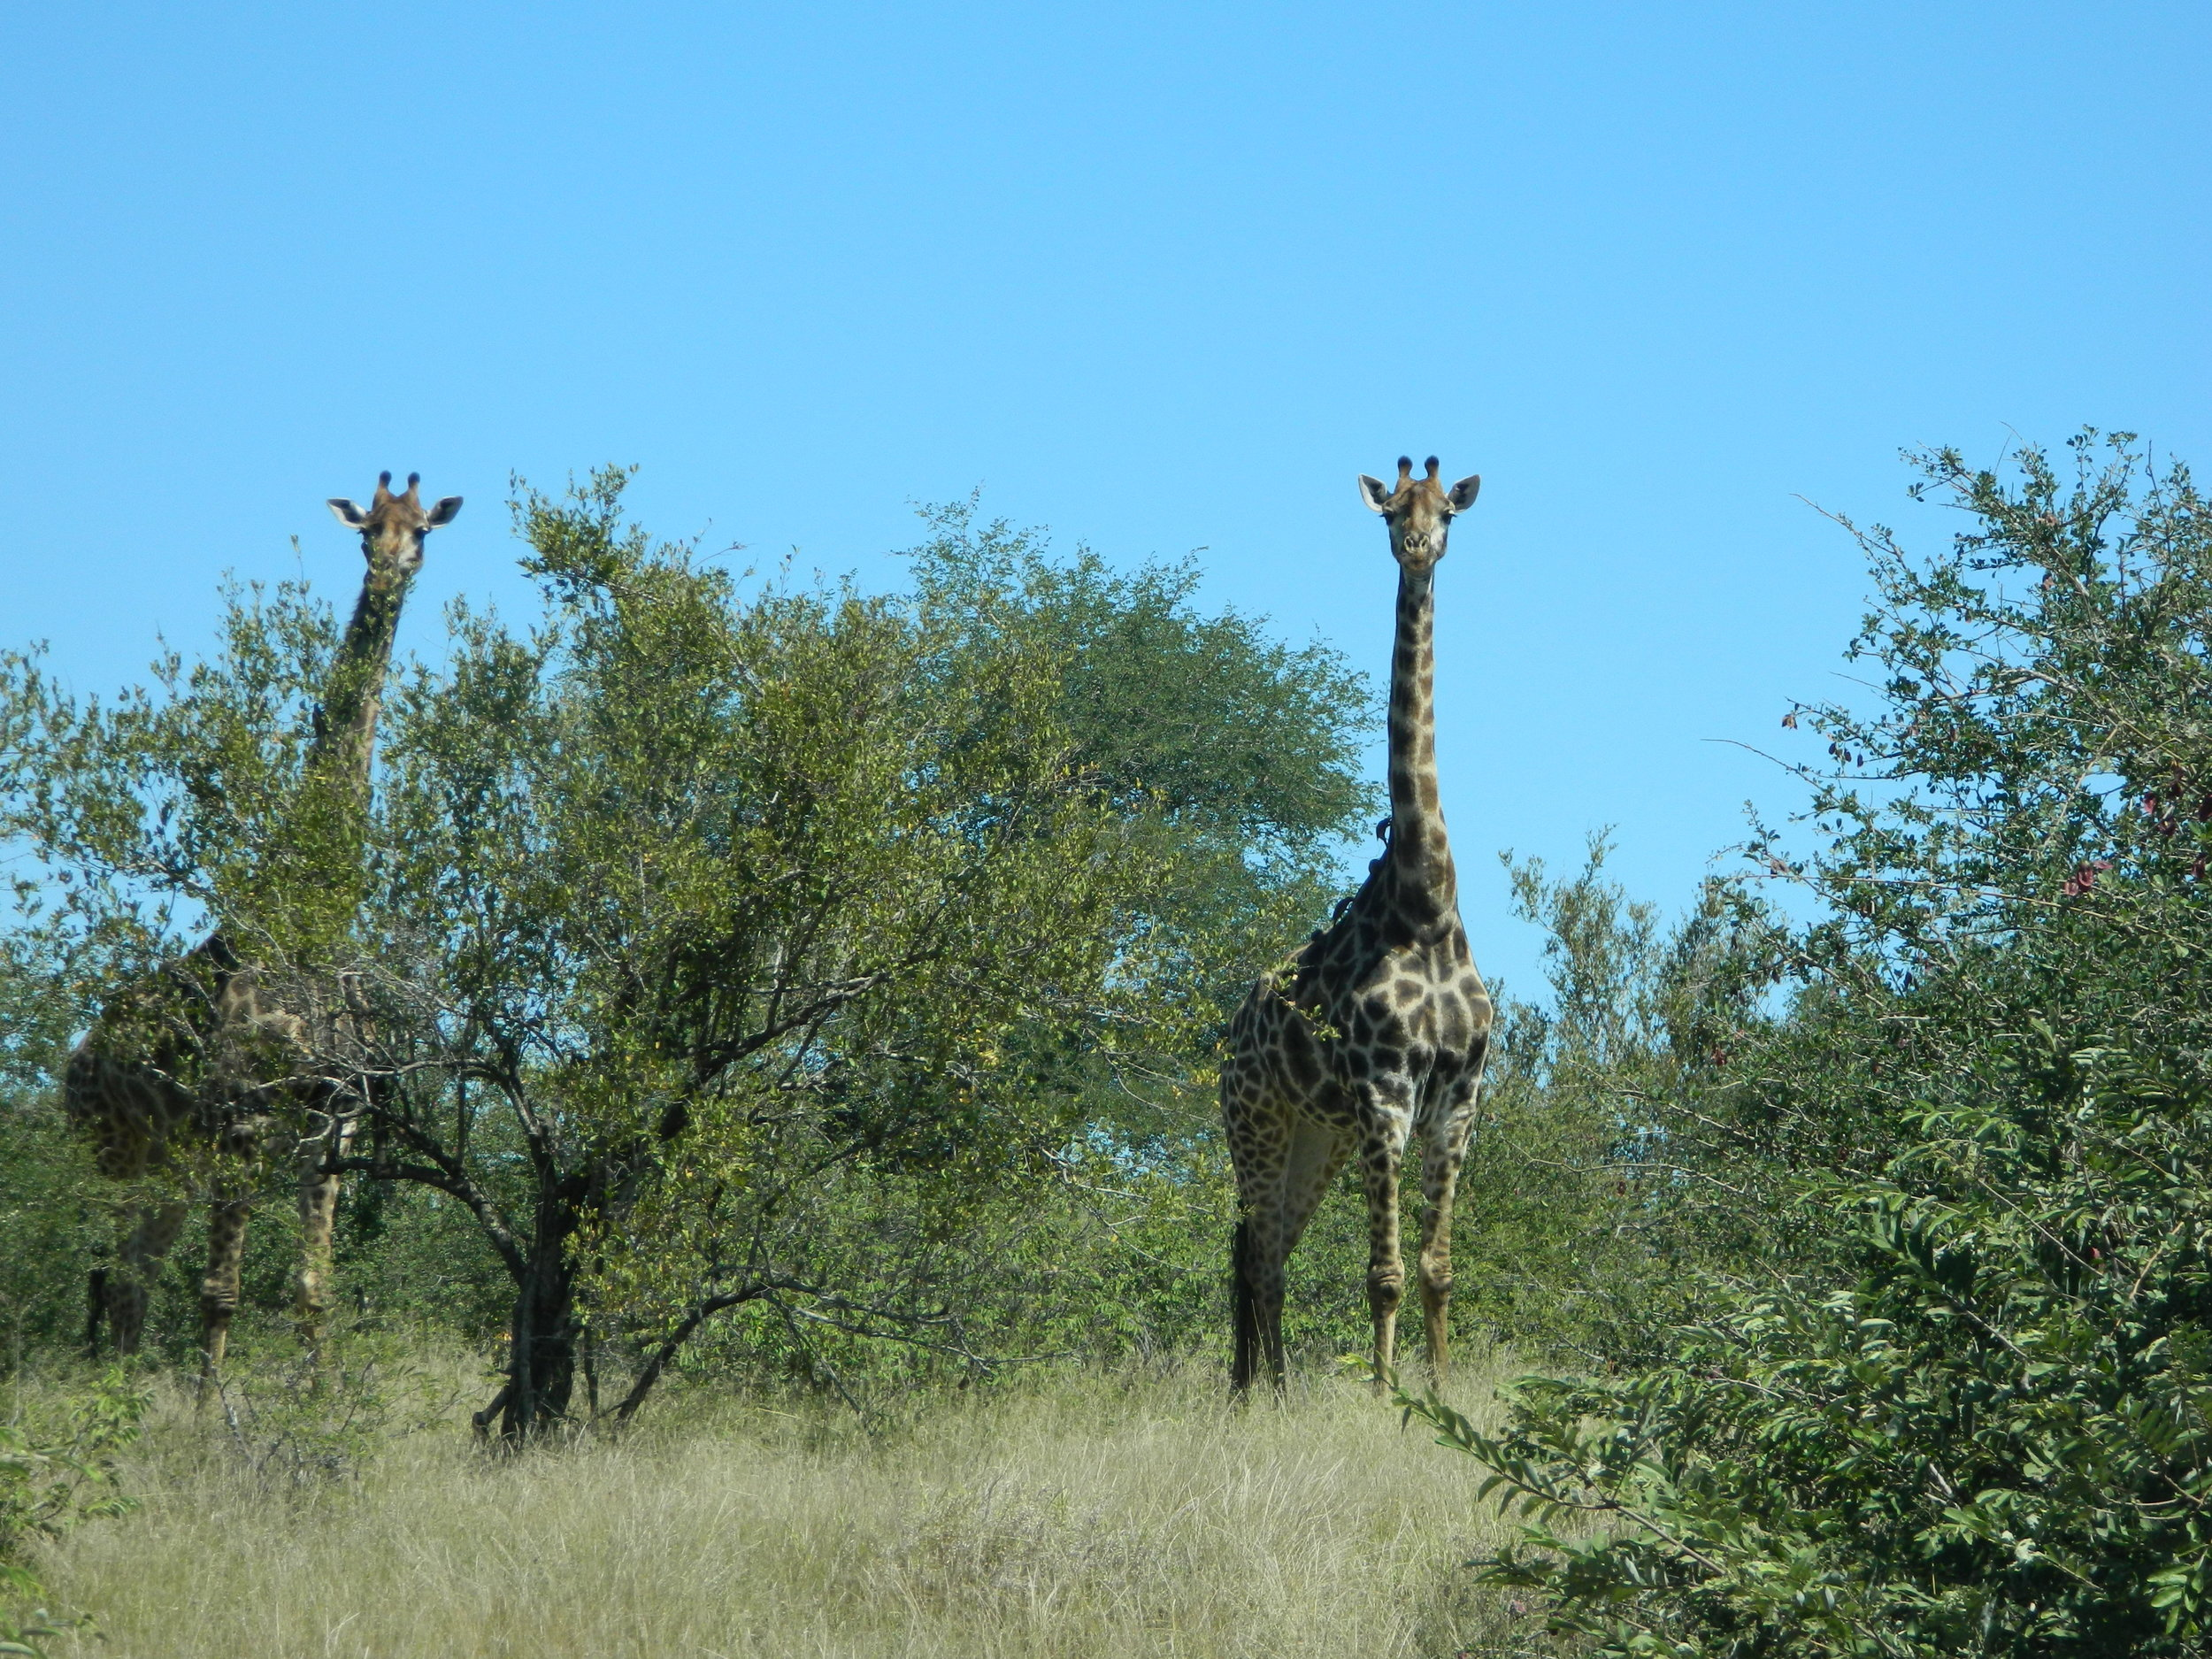 Photographing wildlife in South Africa with my Nikon CoolPix was amazing, and now I want to go back with my DSLR.